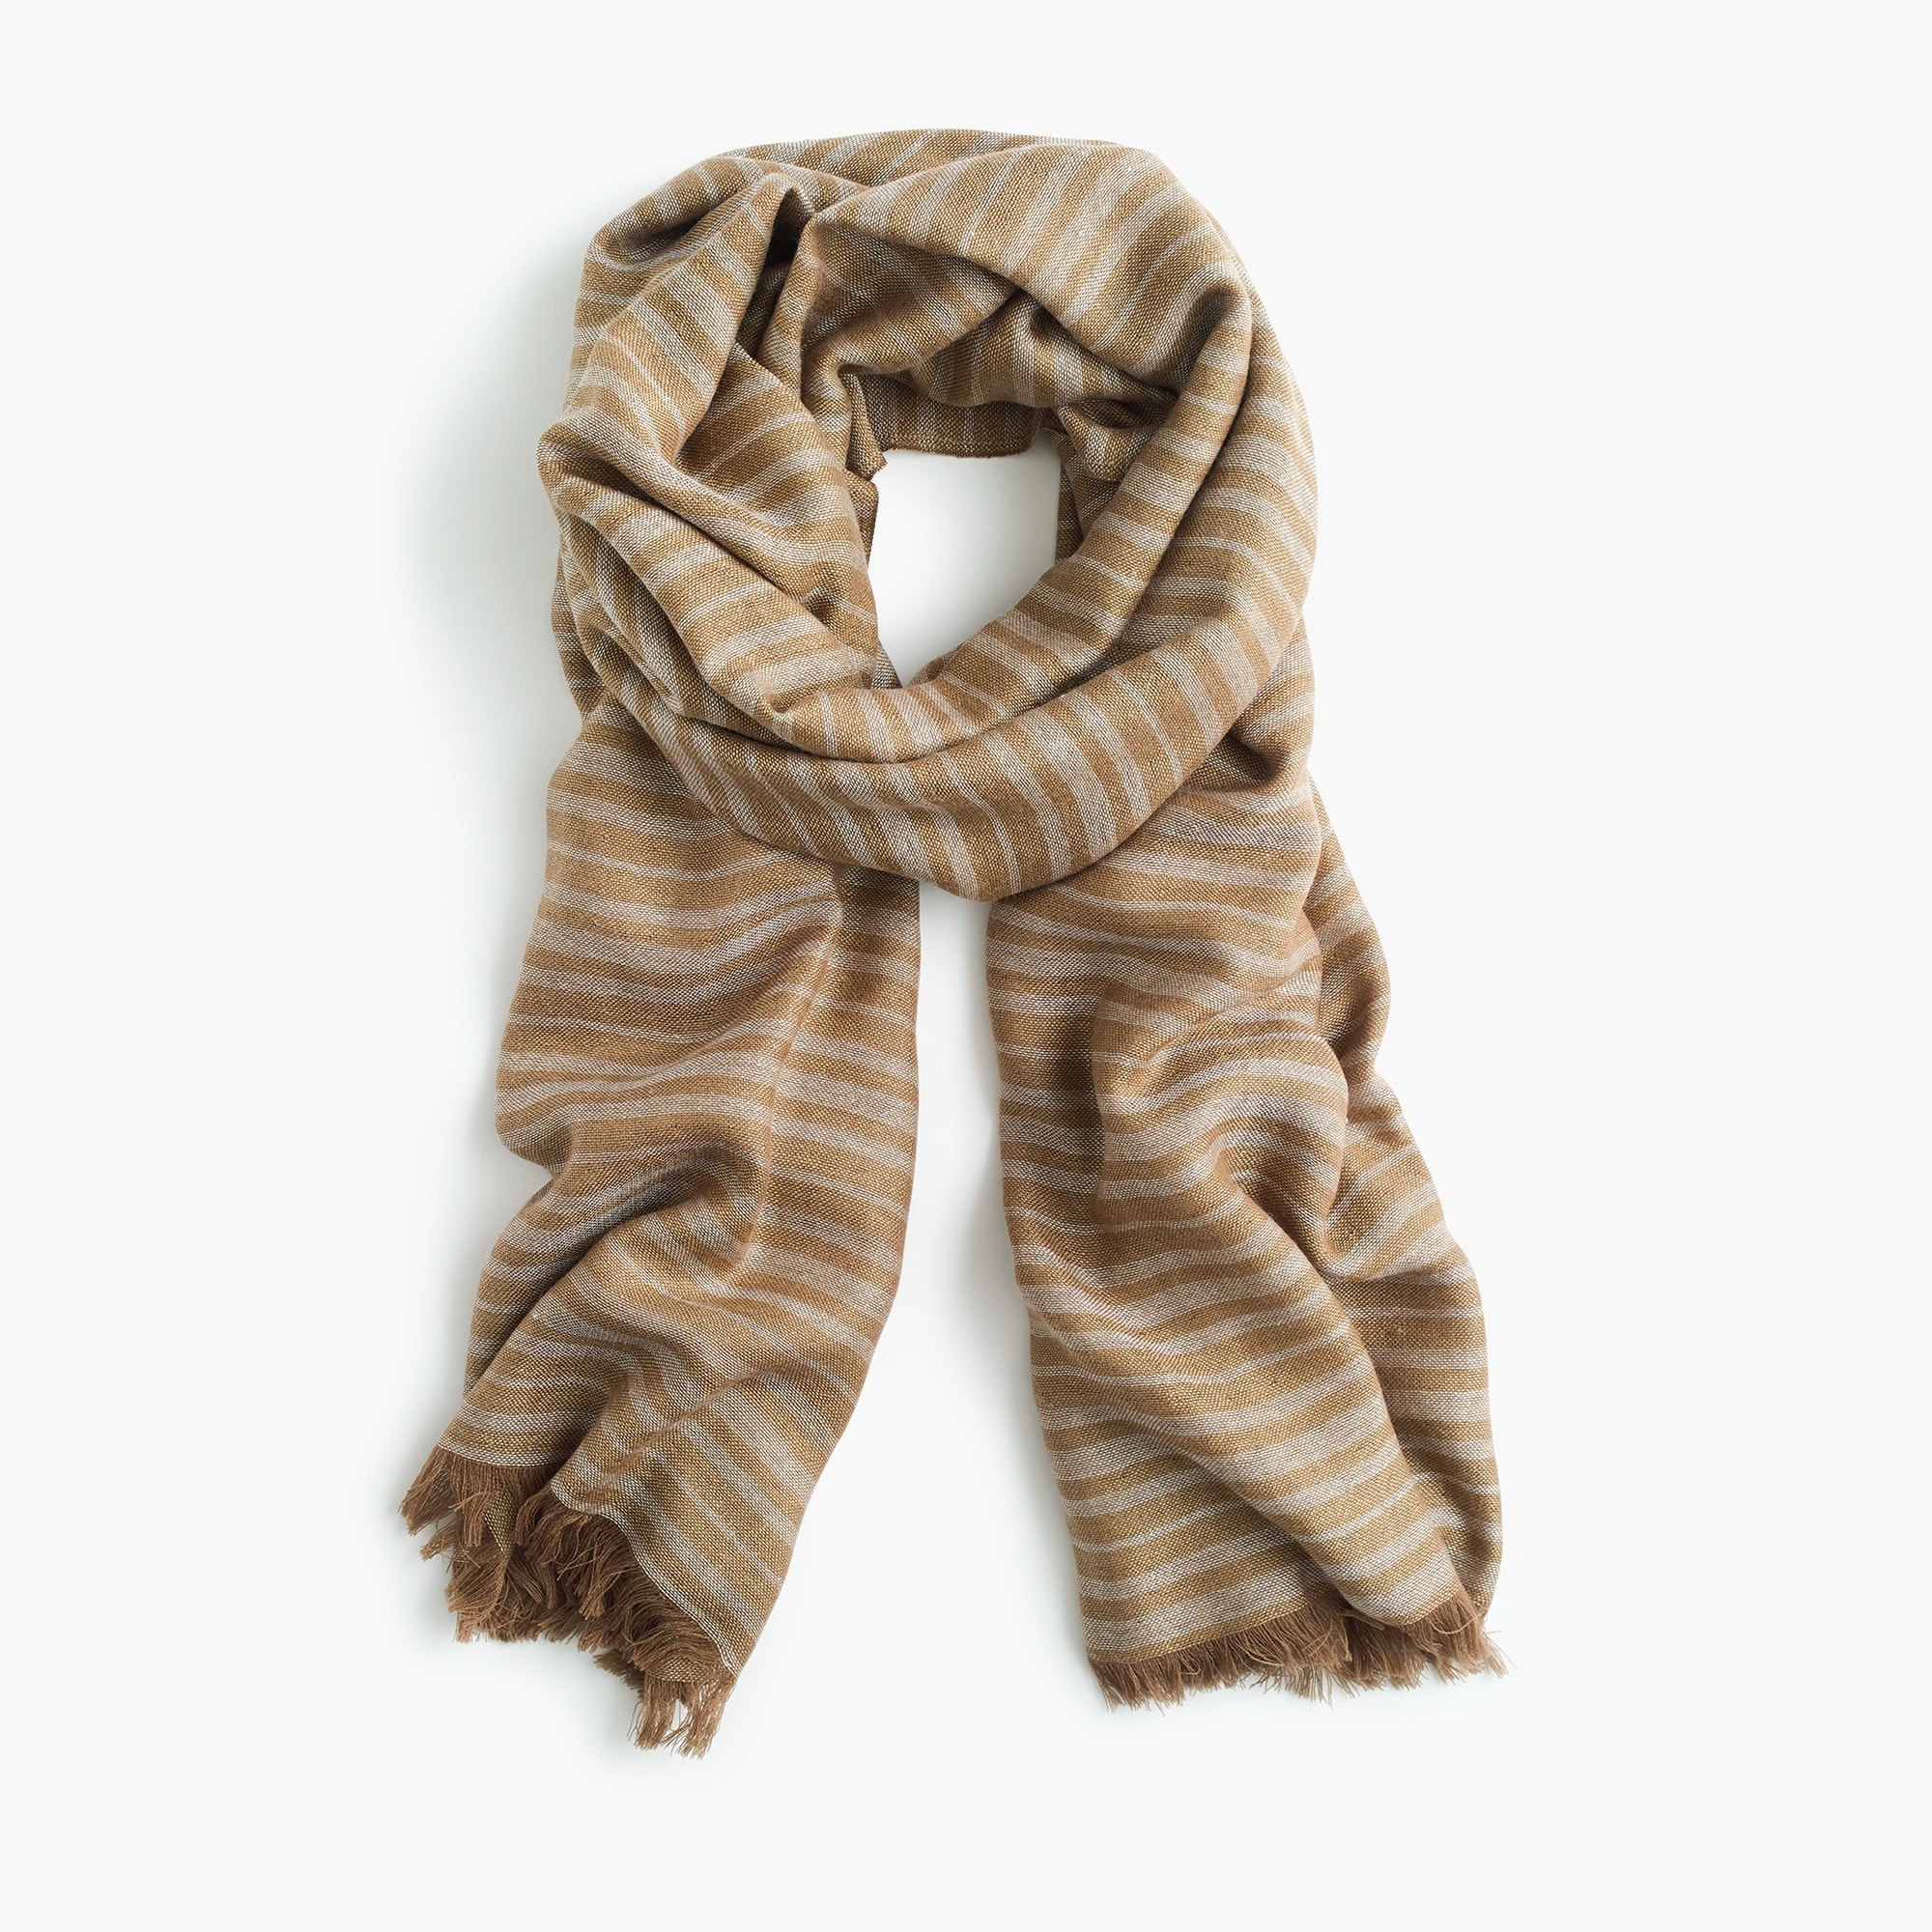 womens Double-sided woven scarf in stripes and solid